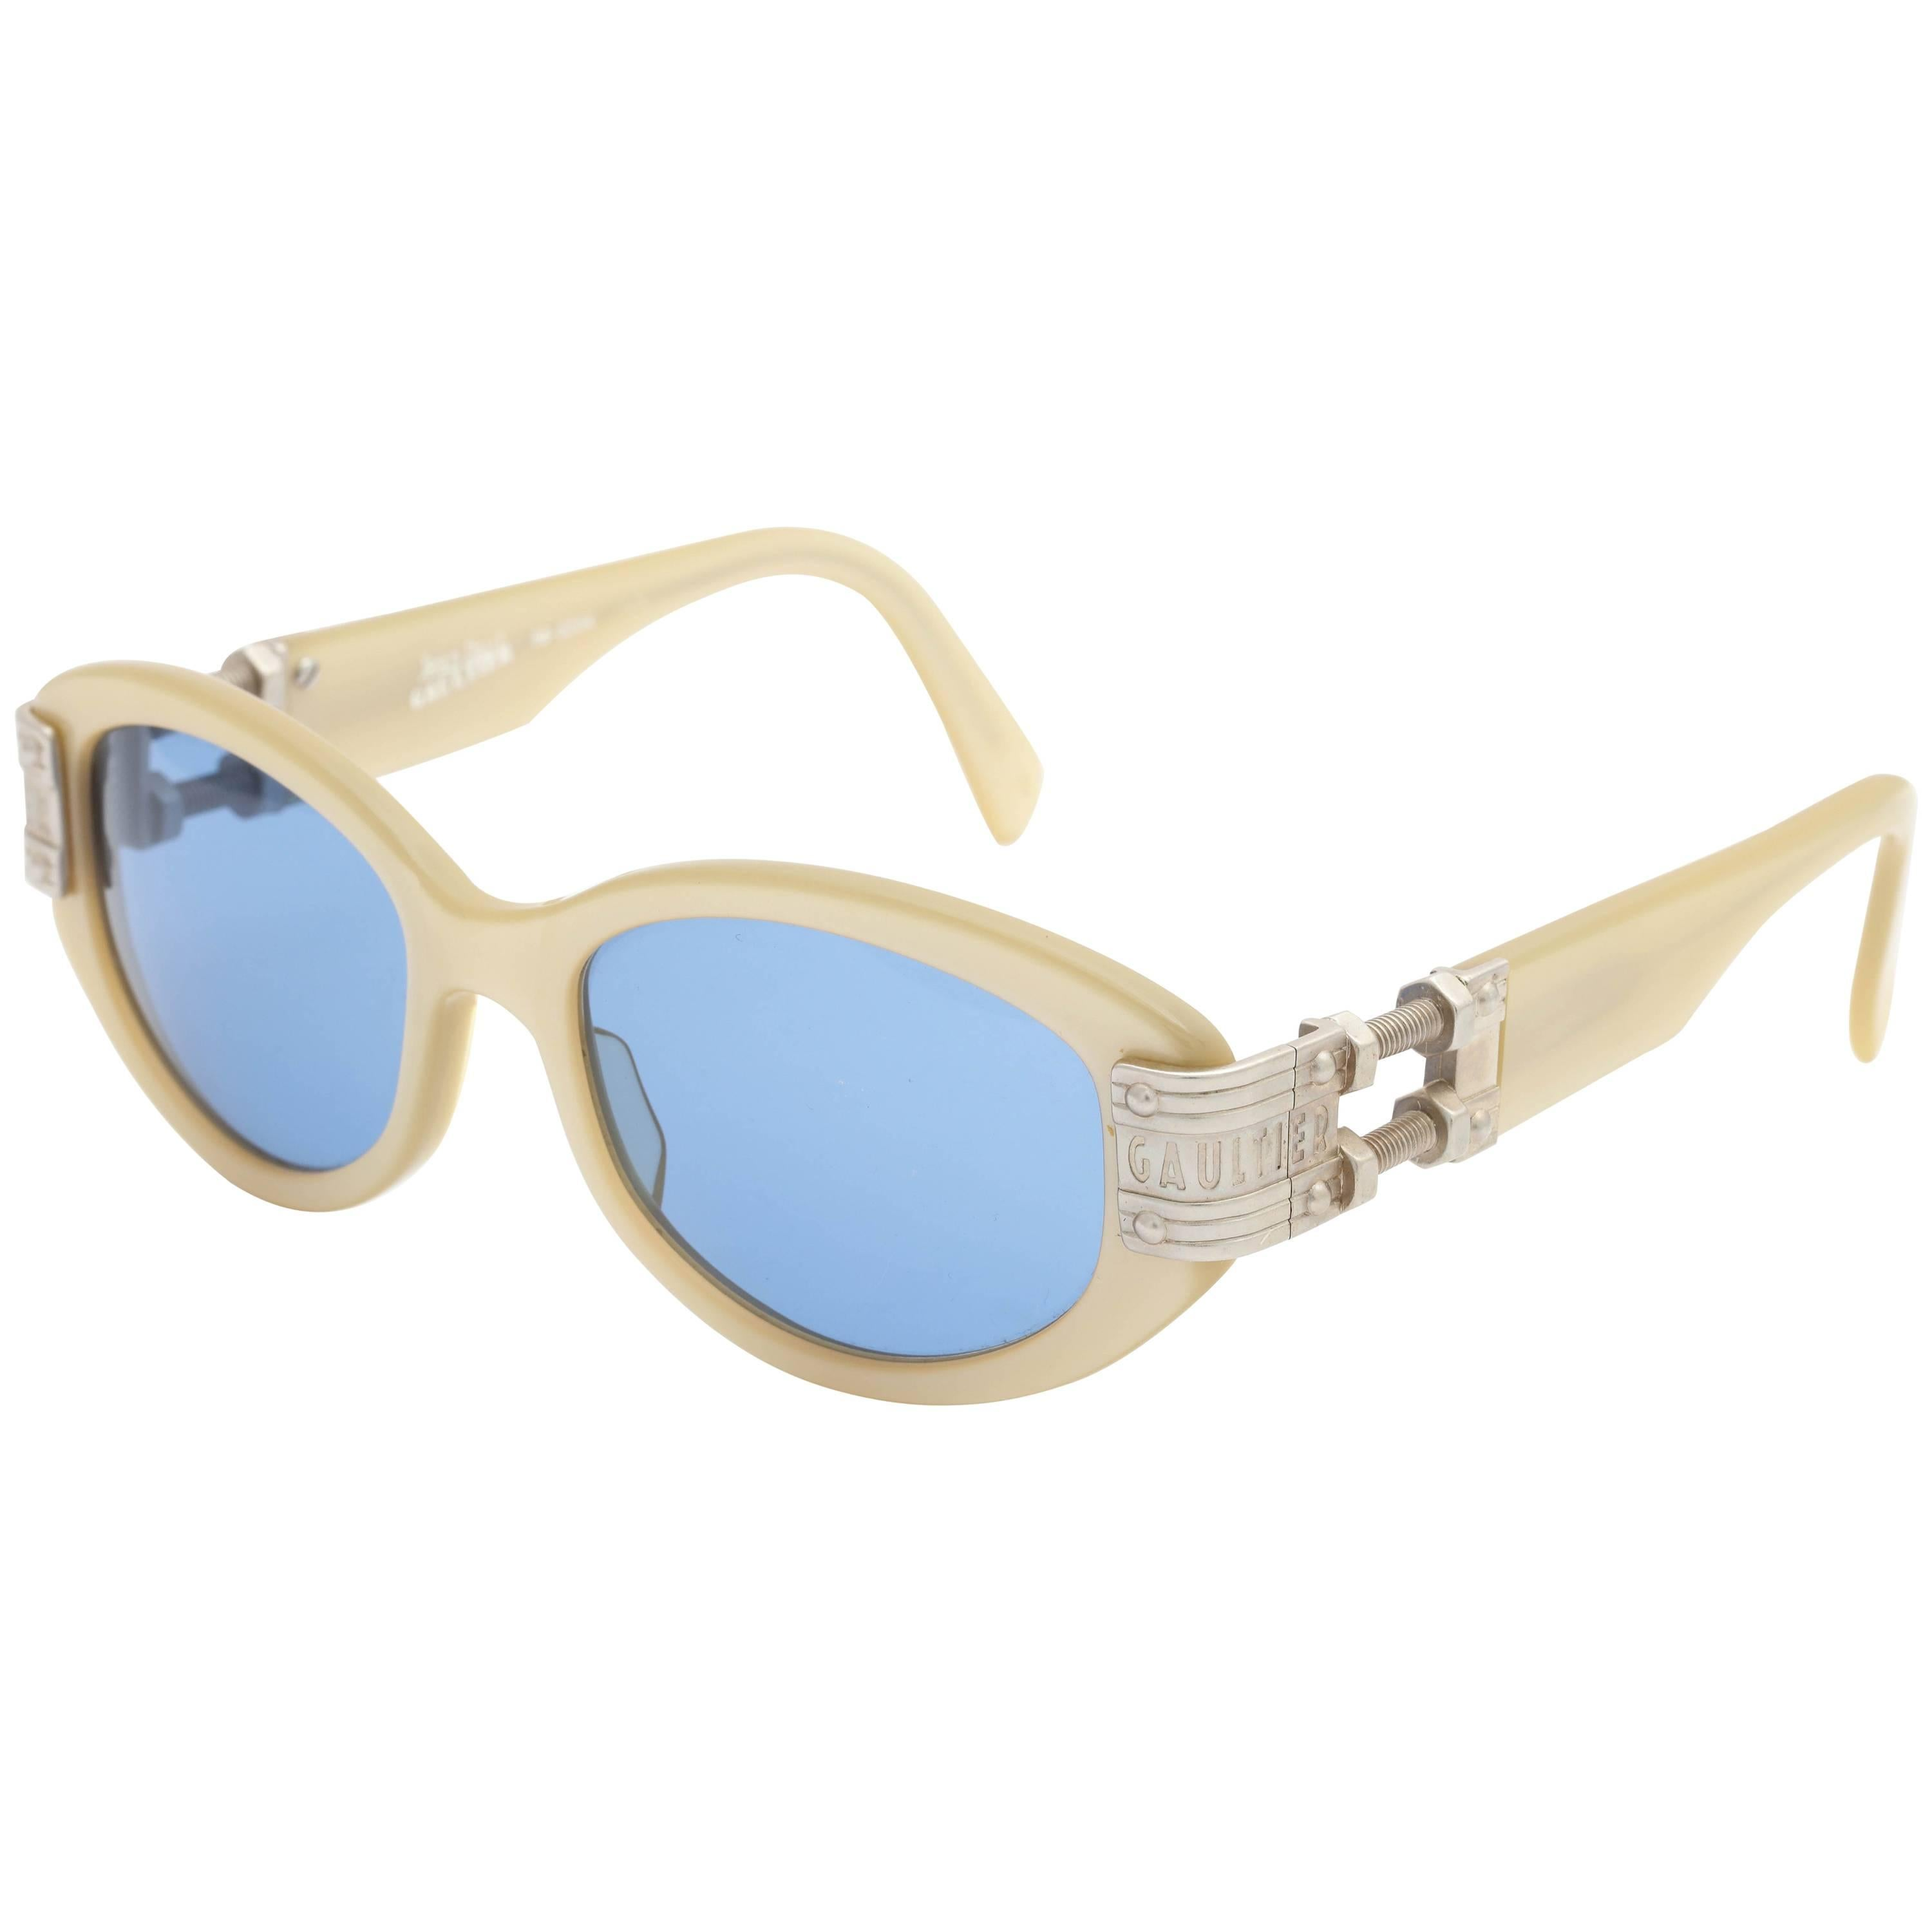 b5649ad51adea Vintage Gucci Sunglasses For Sale at 1stdibs